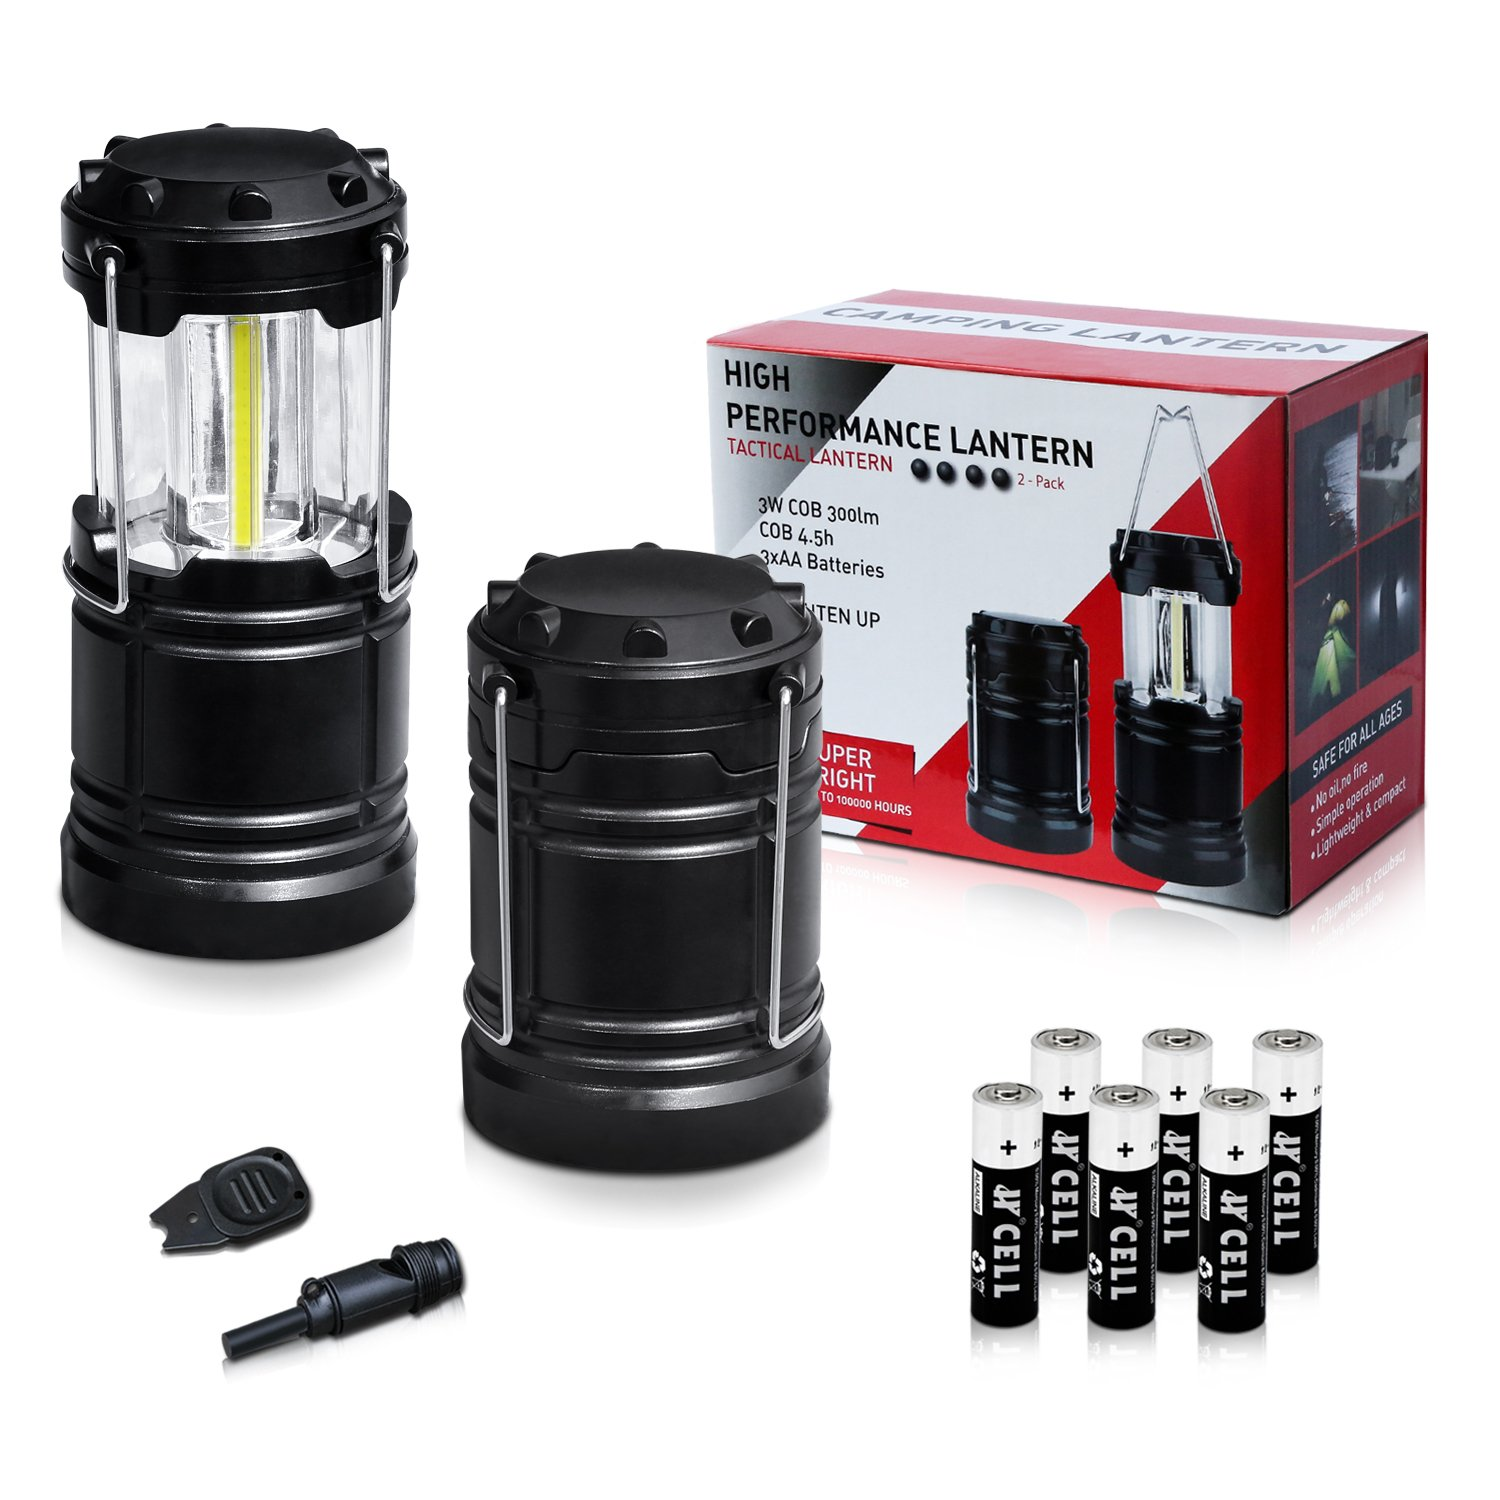 KPSTEK Portable Camping Lantern, 2 Pack LED Lanterns with 6AA Batteries, Magnetic Base, Fire Starter, Survival Whistle - Best Outdoor, Indoor, Emergency Light, Hurricane, Tent Lamp, Collapsible